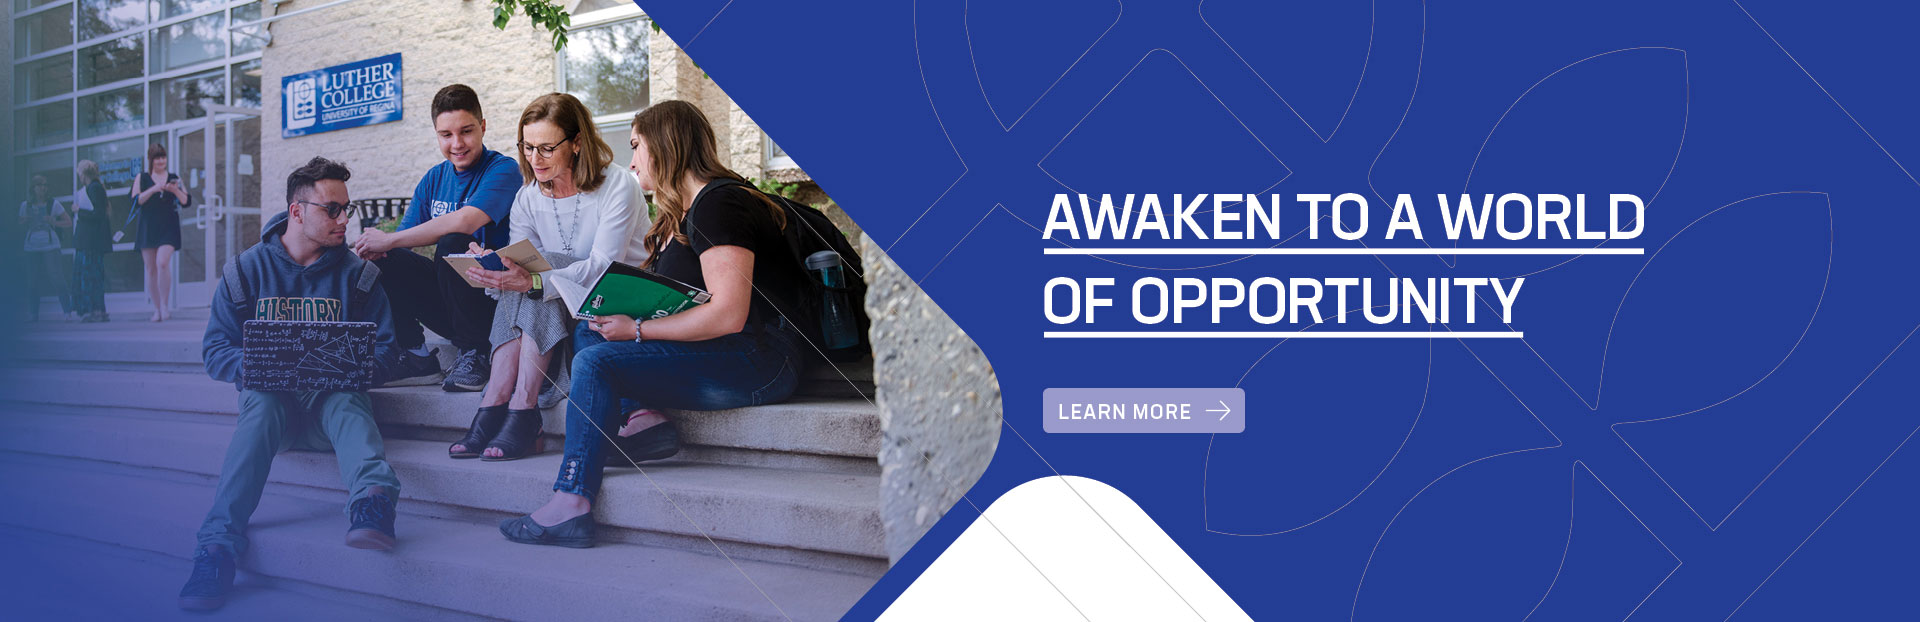 Awaken to a world of opportunities with Luther College University of Regina